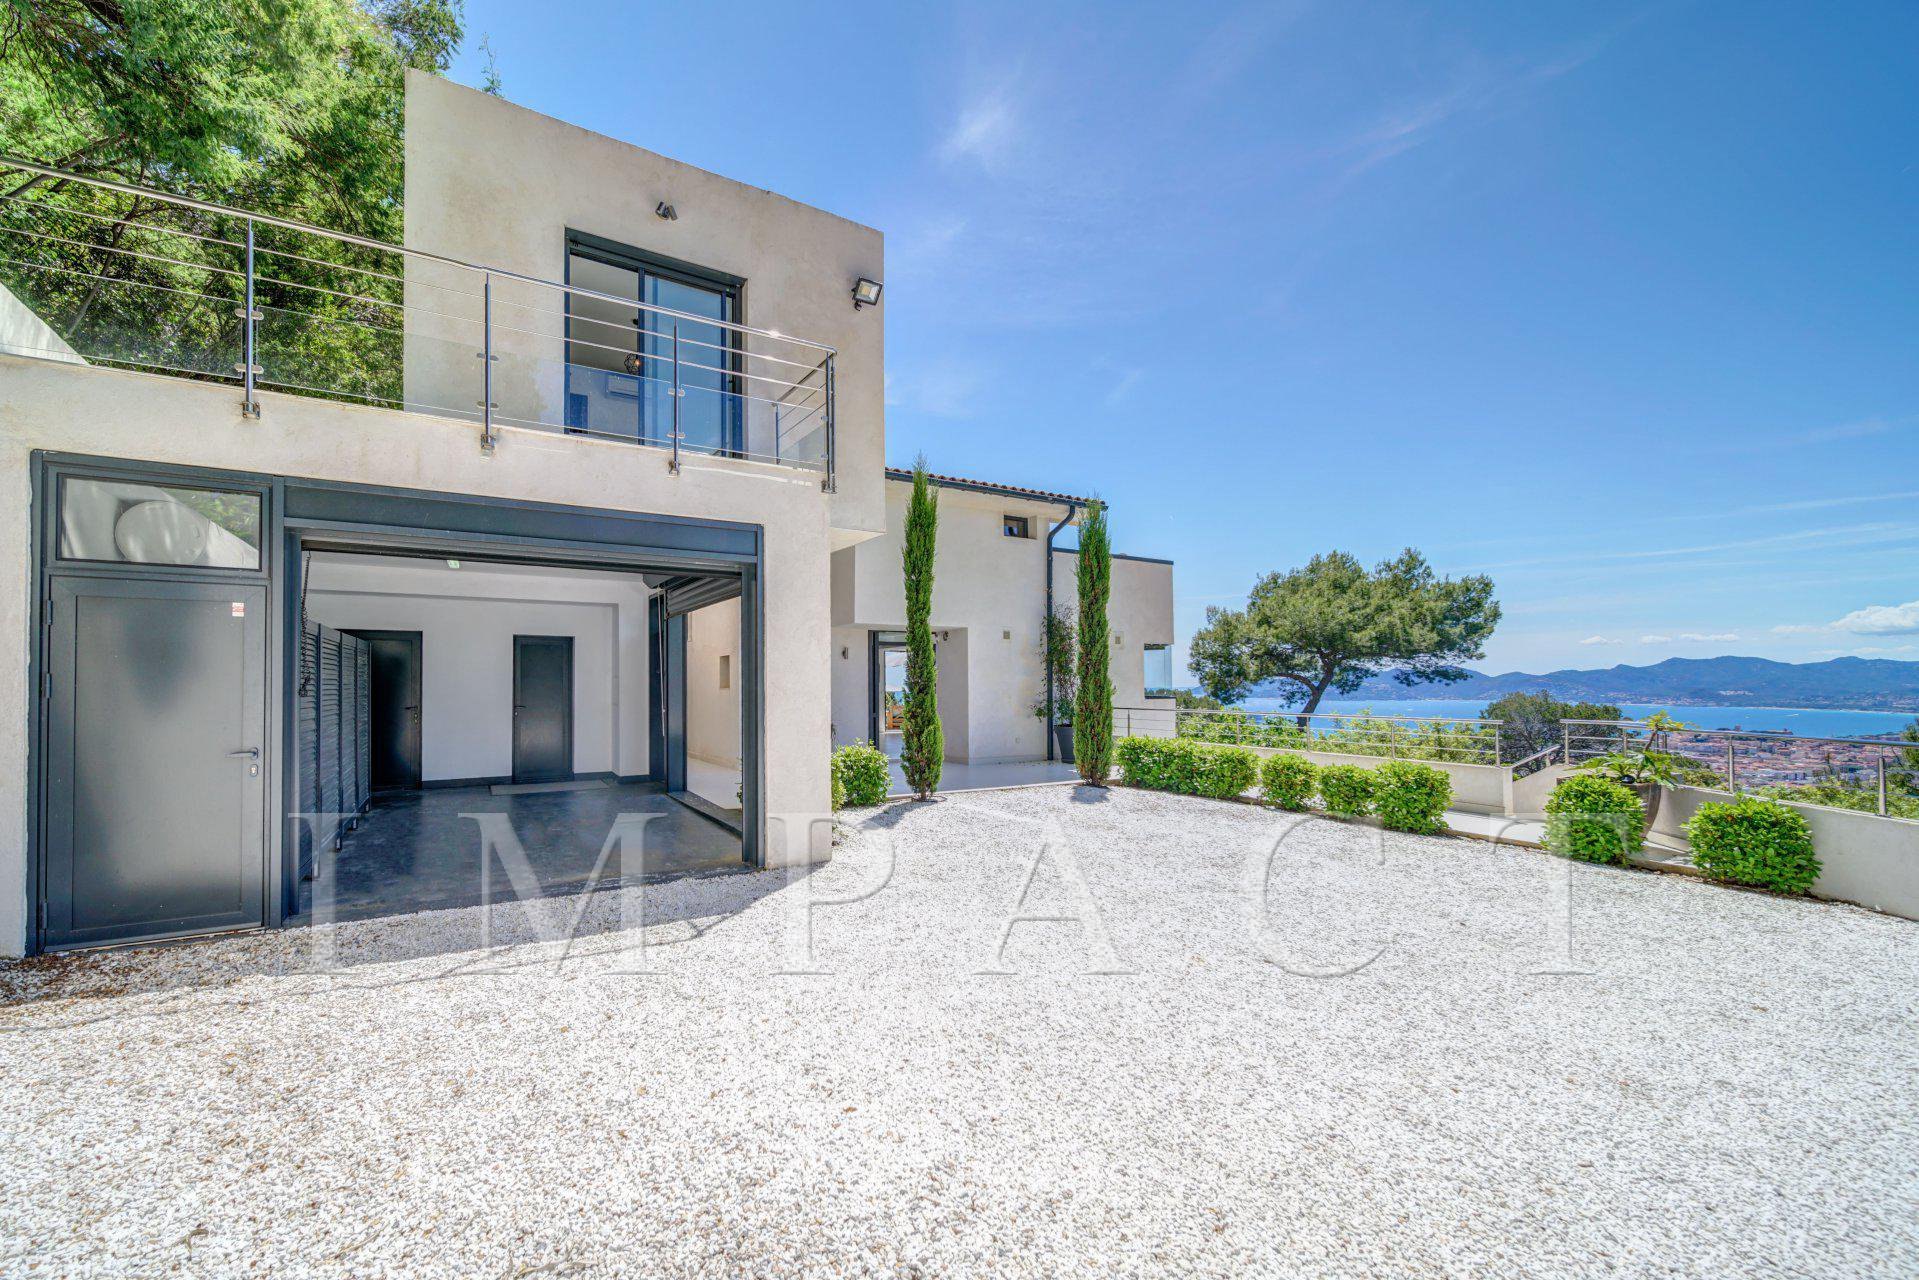 House for sale Cannes Beau Soleil -  6 master bedrooms - For sale Cannes Californie -  panoramic sea view